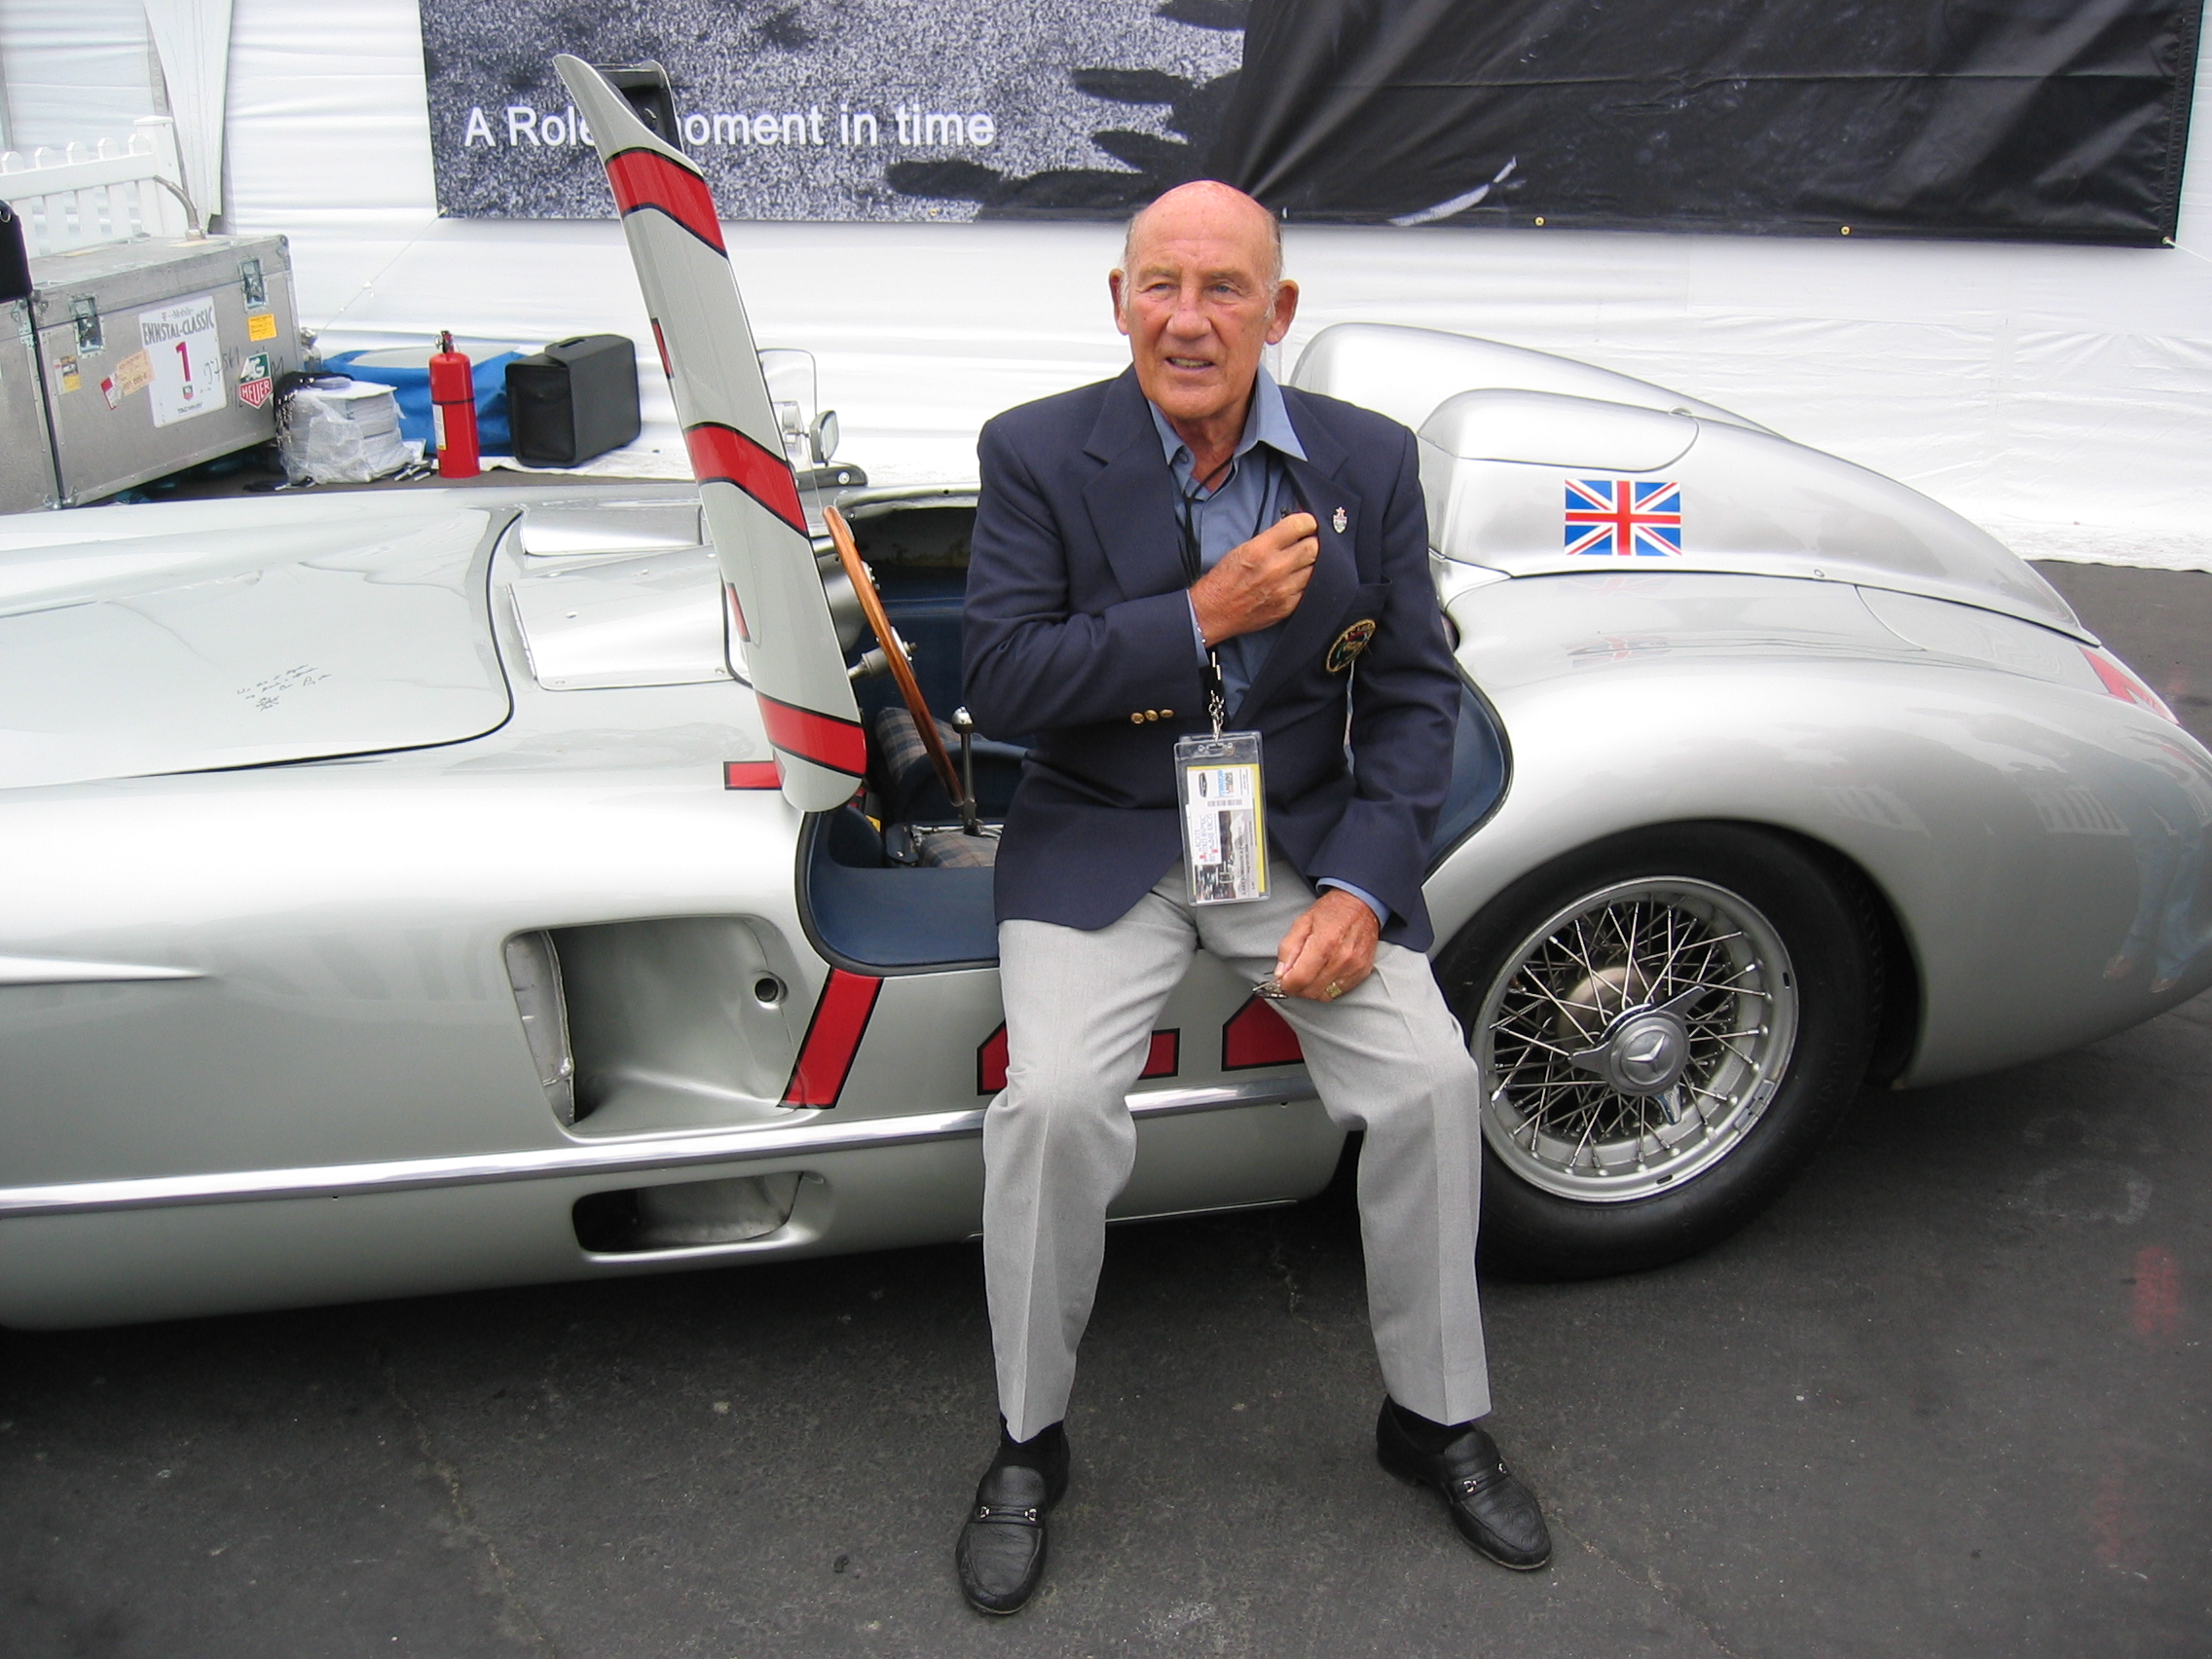 Sir Stirling Moss and the the iconic 1955 Mercedes Benz 300 SLR (W196S).